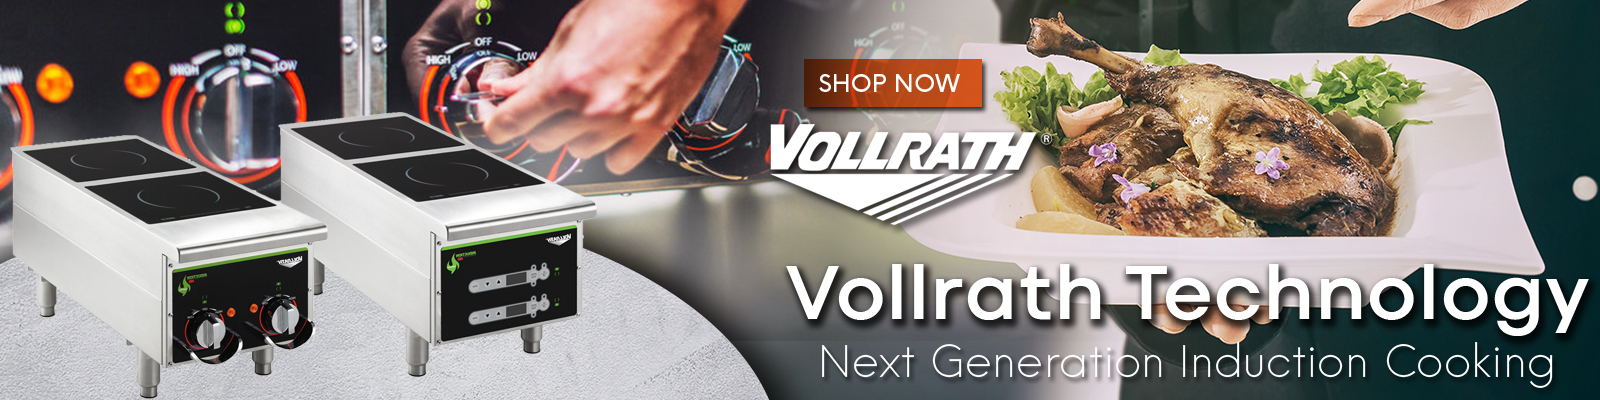 Vollrath Commercial Induction Cookers, Vollrath Cooking Equipment